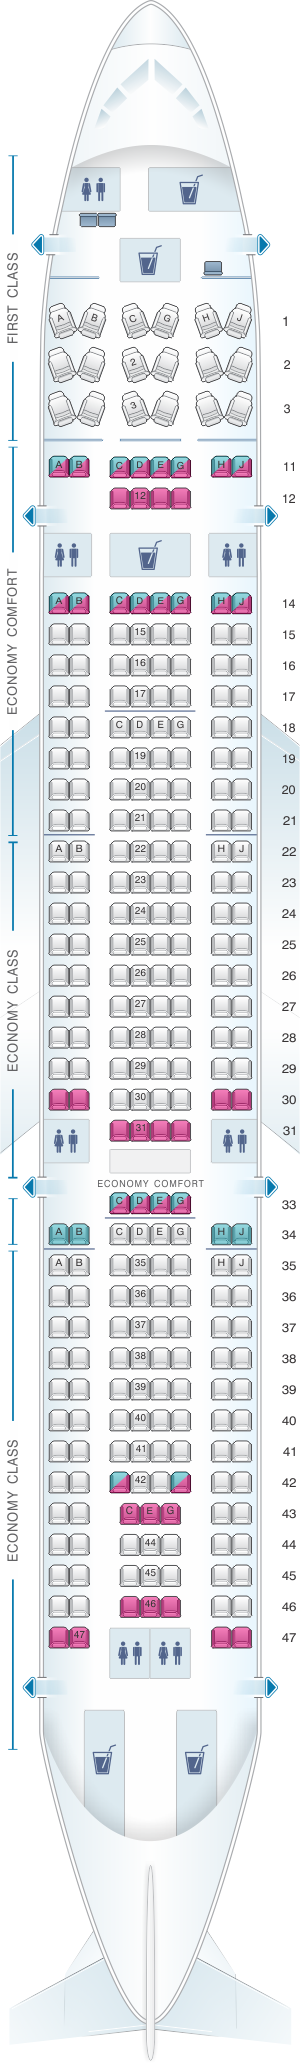 Seat map for Hawaiian Airlines Airbus A330 200 retrofitted